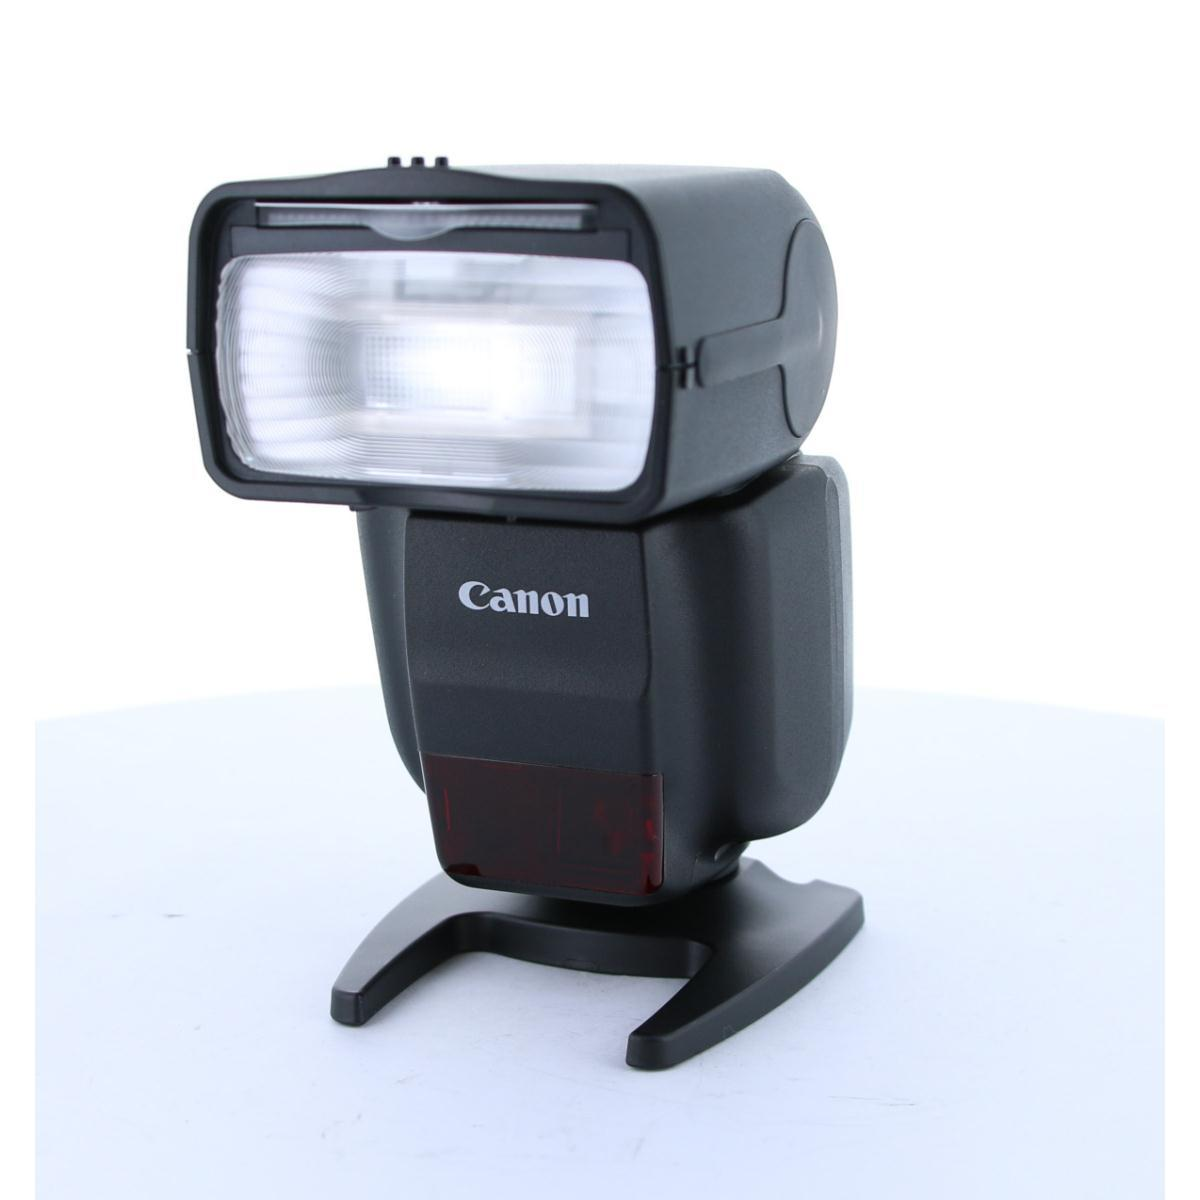 CANON 430EXIII-RT CANON【中古】, ロゴスペットサイト:b35a7731 --- officewill.xsrv.jp